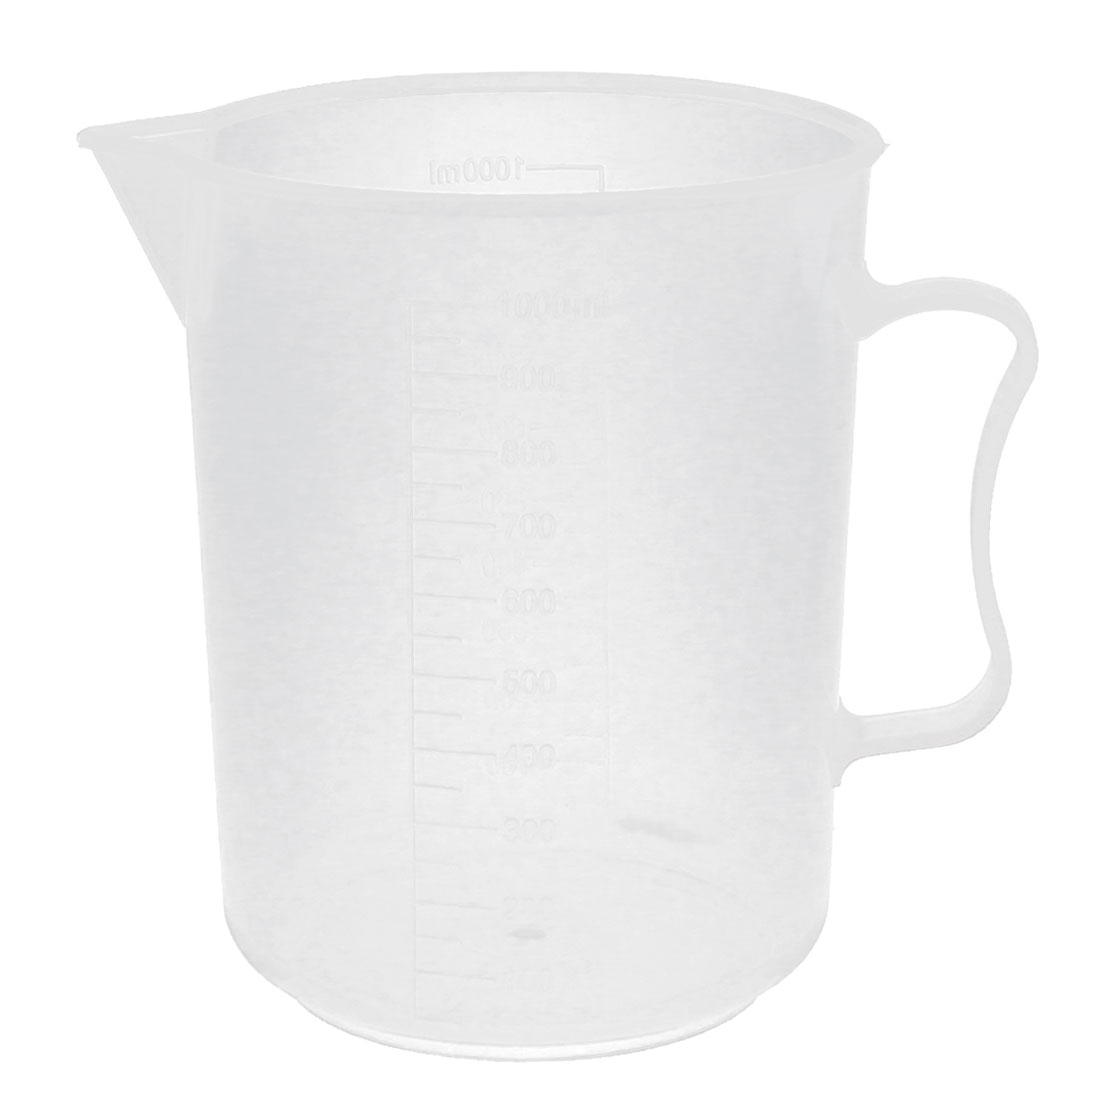 1000ml Plastic Laboratory Chemistry Transparent Measuring Cup Handle Design Cup Beaker